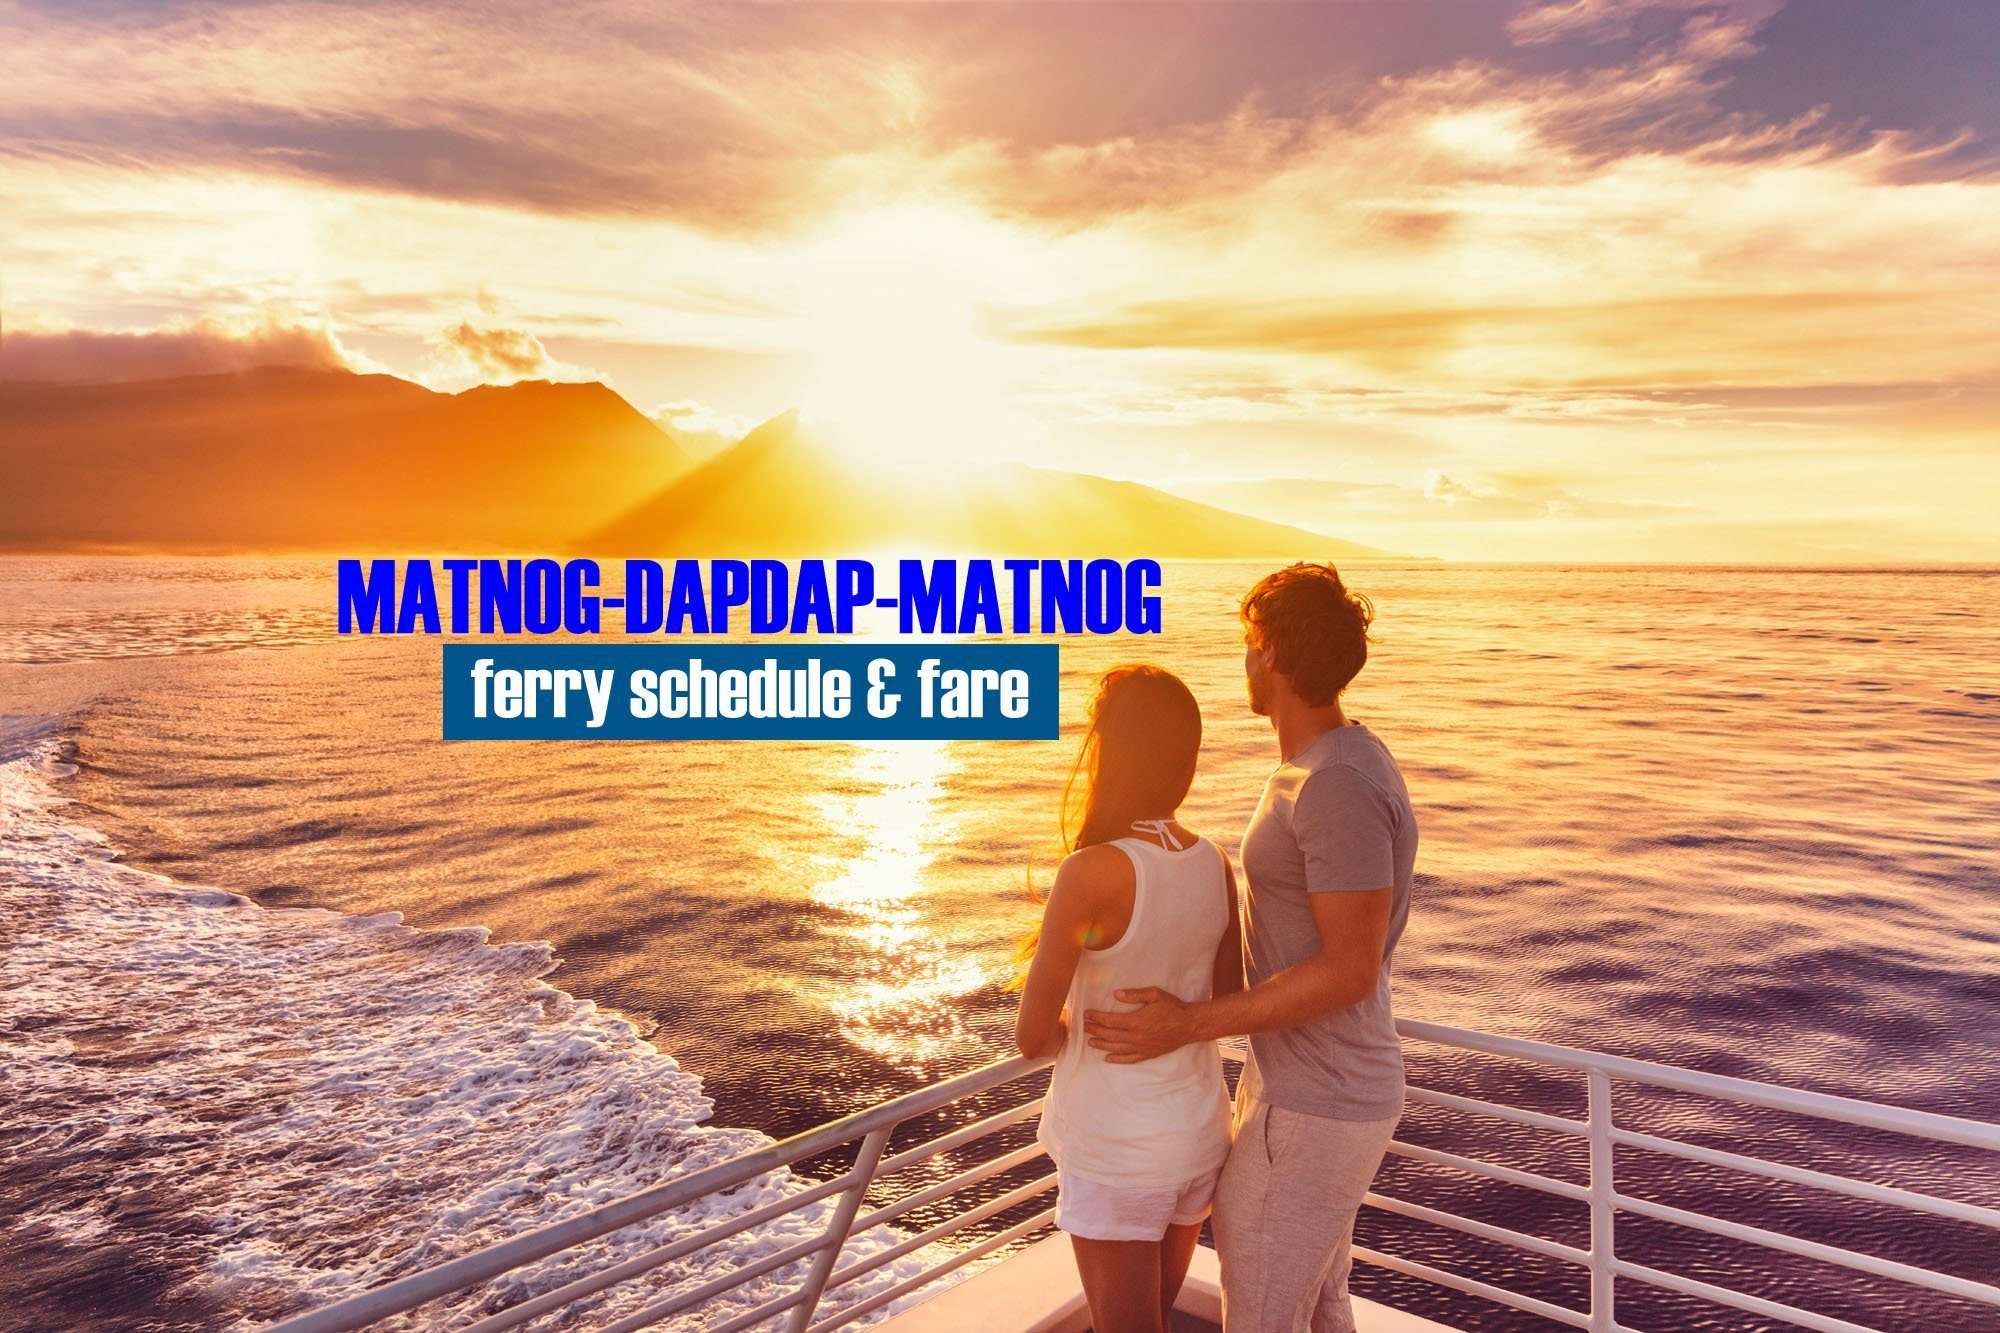 Matnog to Dapdap: Ferry Schedule & Fare